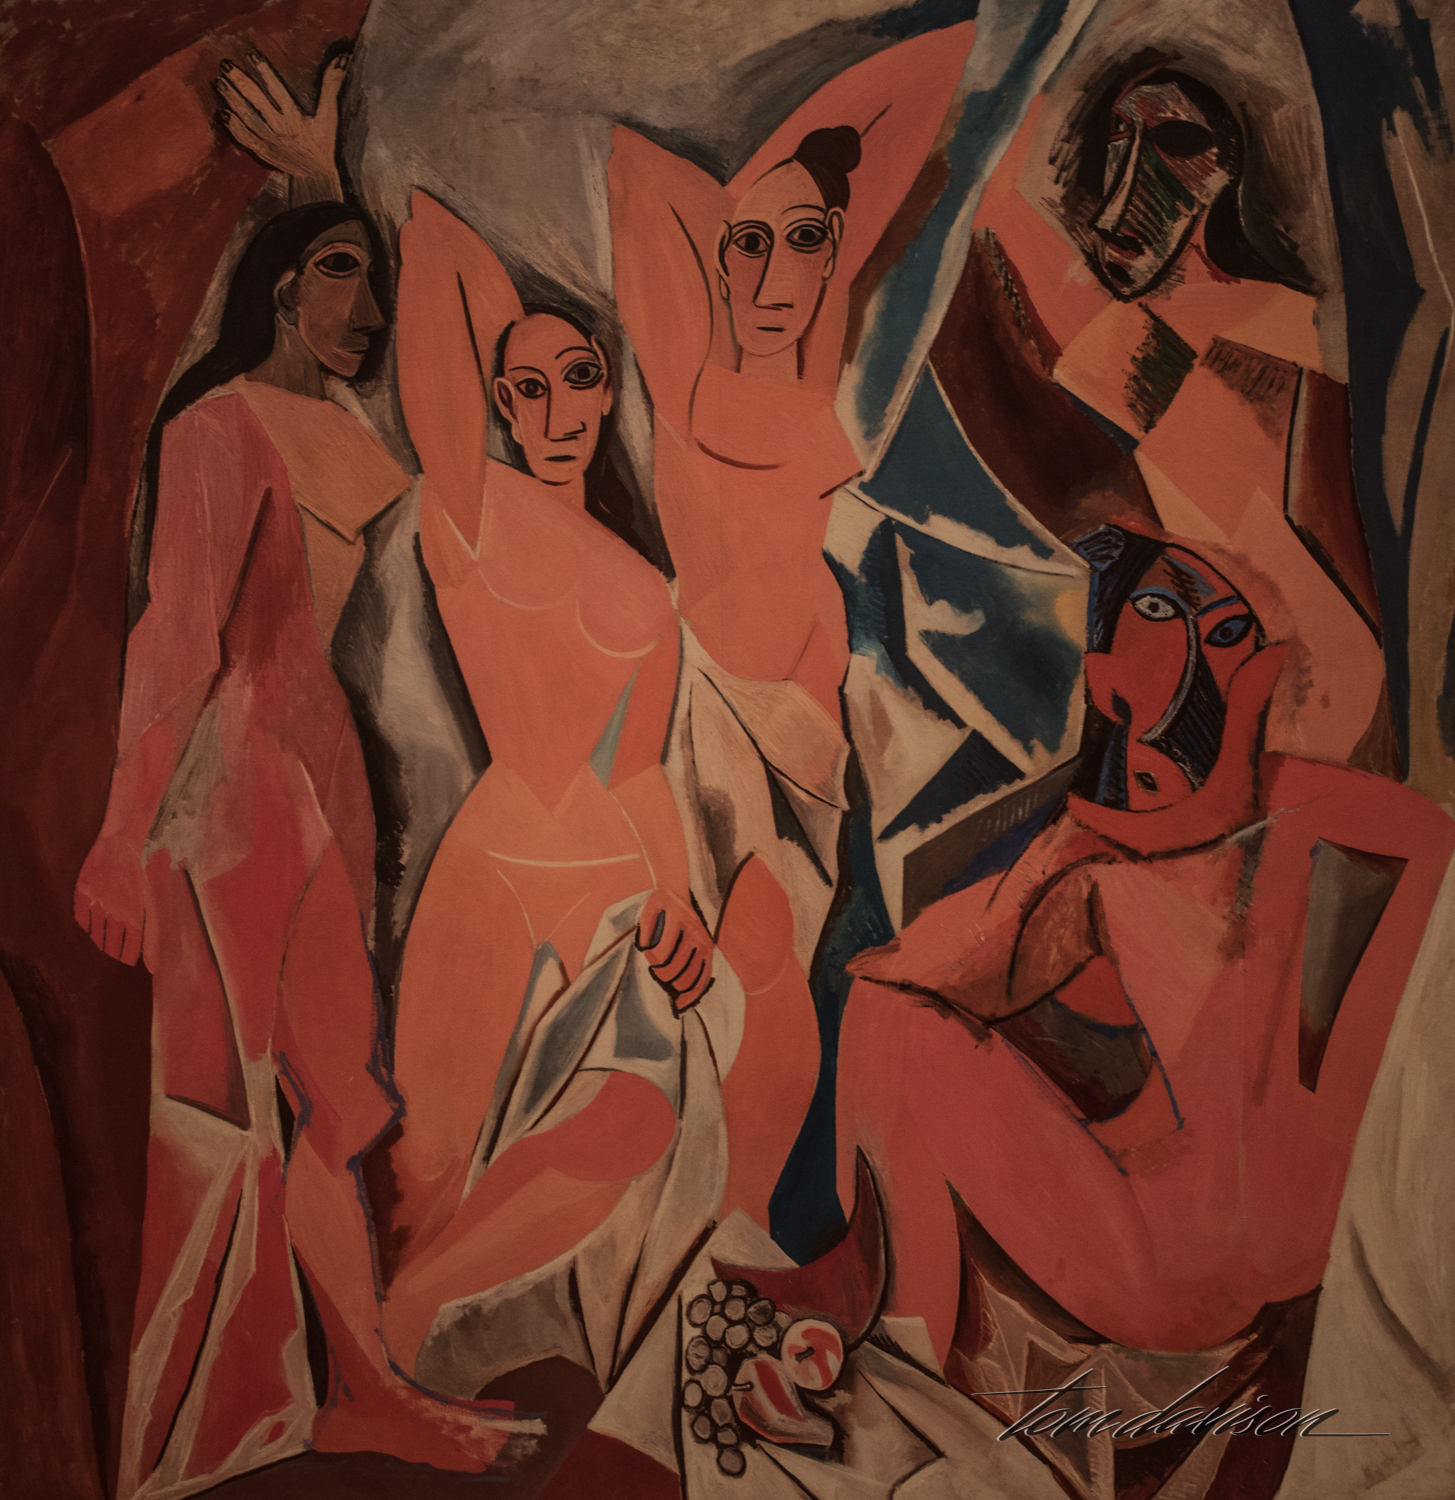 "Les Demoiselles d'Avignon,   Oil on canvas, 1907.  ""Considered one of the most famous works of art from the 20th century, Picasso's painting marks a radical break from traditional European painting.  Within a compressed space, five nude women appear to project from the picture's surface.  Their bodies are composed of flat, fractured planes, while their faces are inspired by Iberian sculpture and African masks.  This work signals a revolution in Picasso's style and established him as the leader of the Parisian avant-garde."